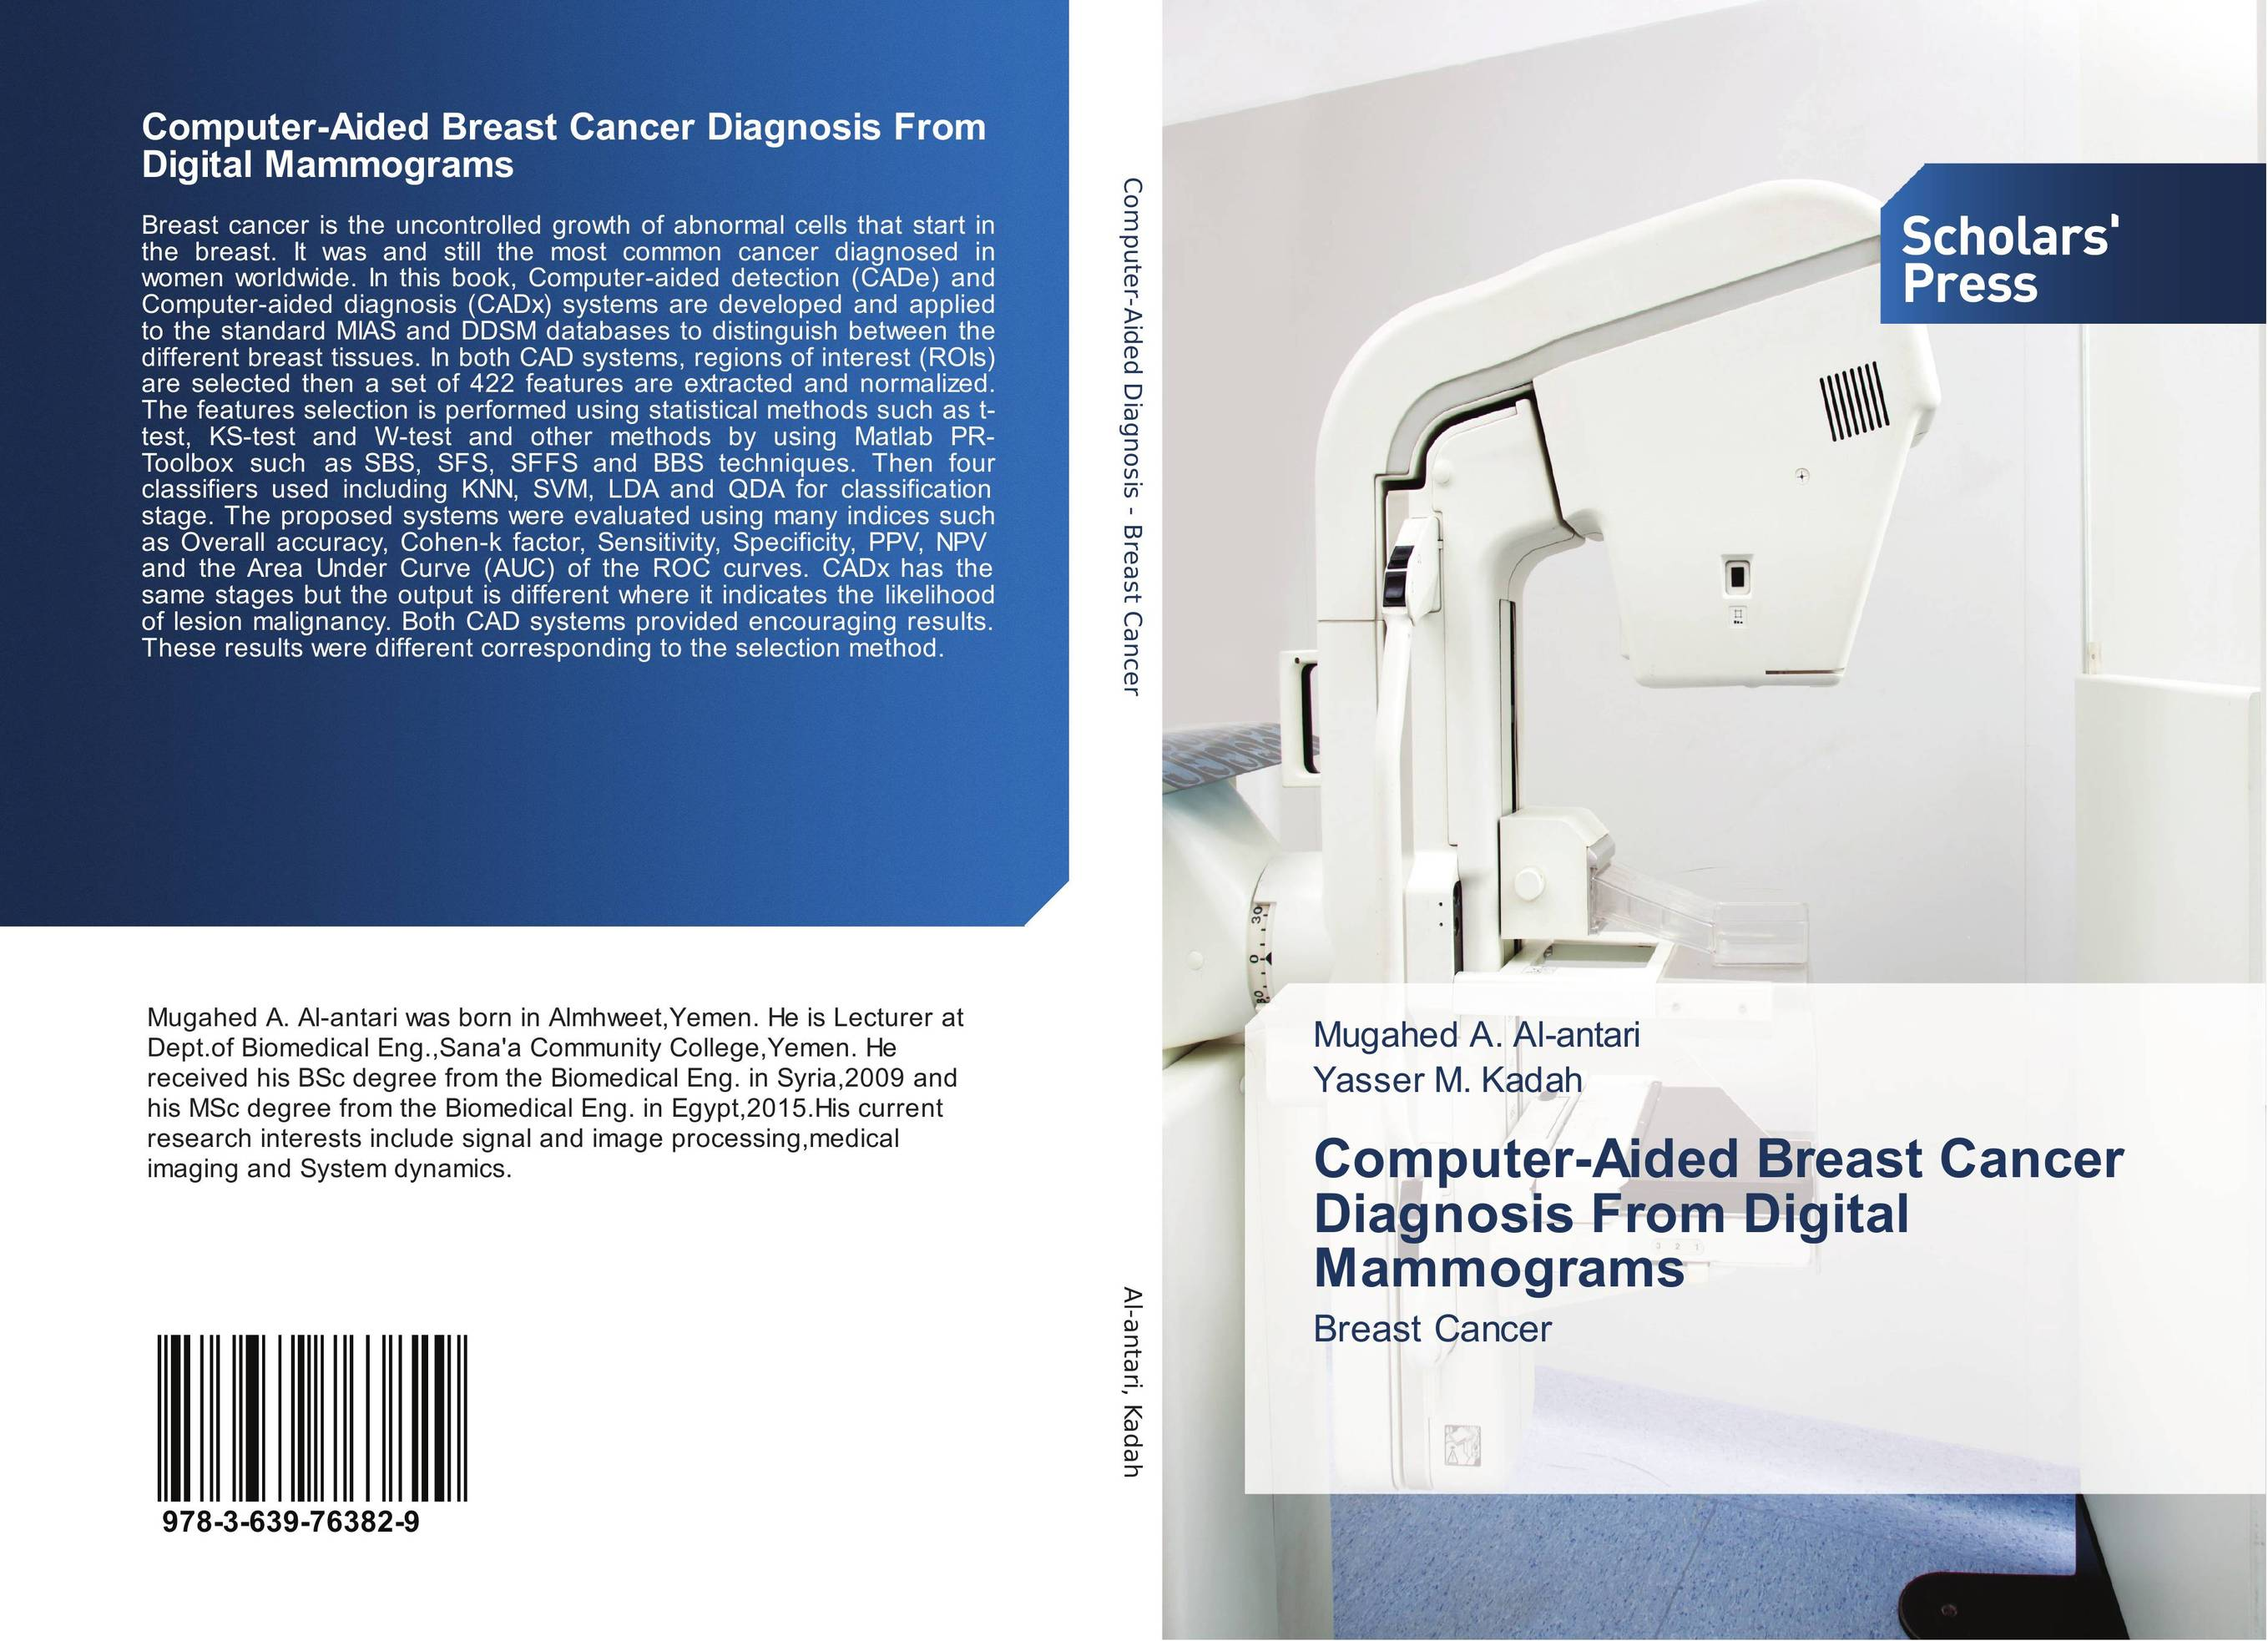 Computer-Aided Breast Cancer Diagnosis From Digital Mammograms viruses cell transformation and cancer 5